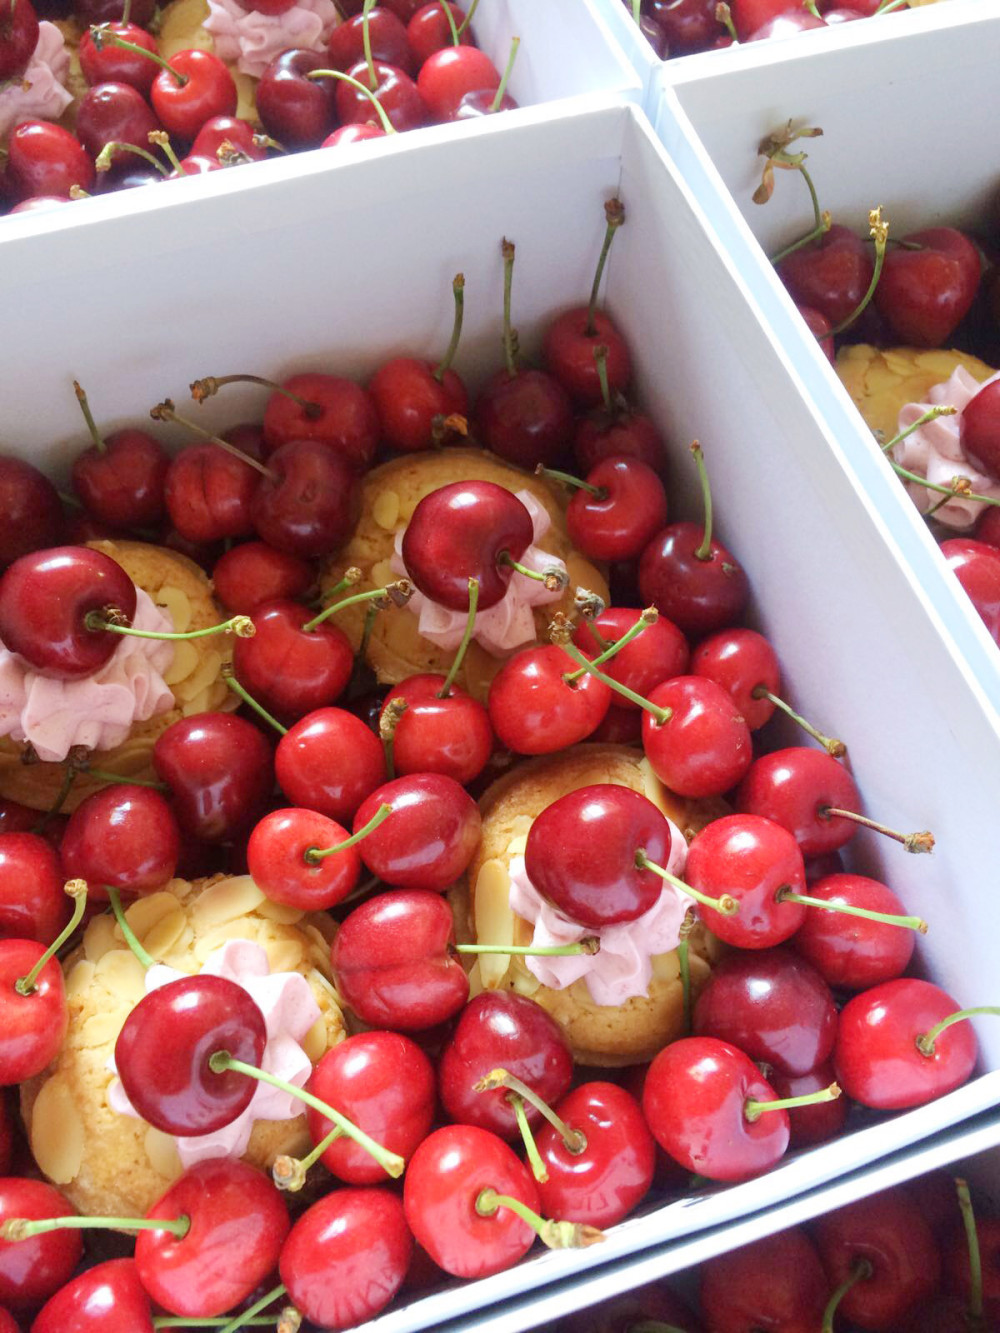 British Cherry Season